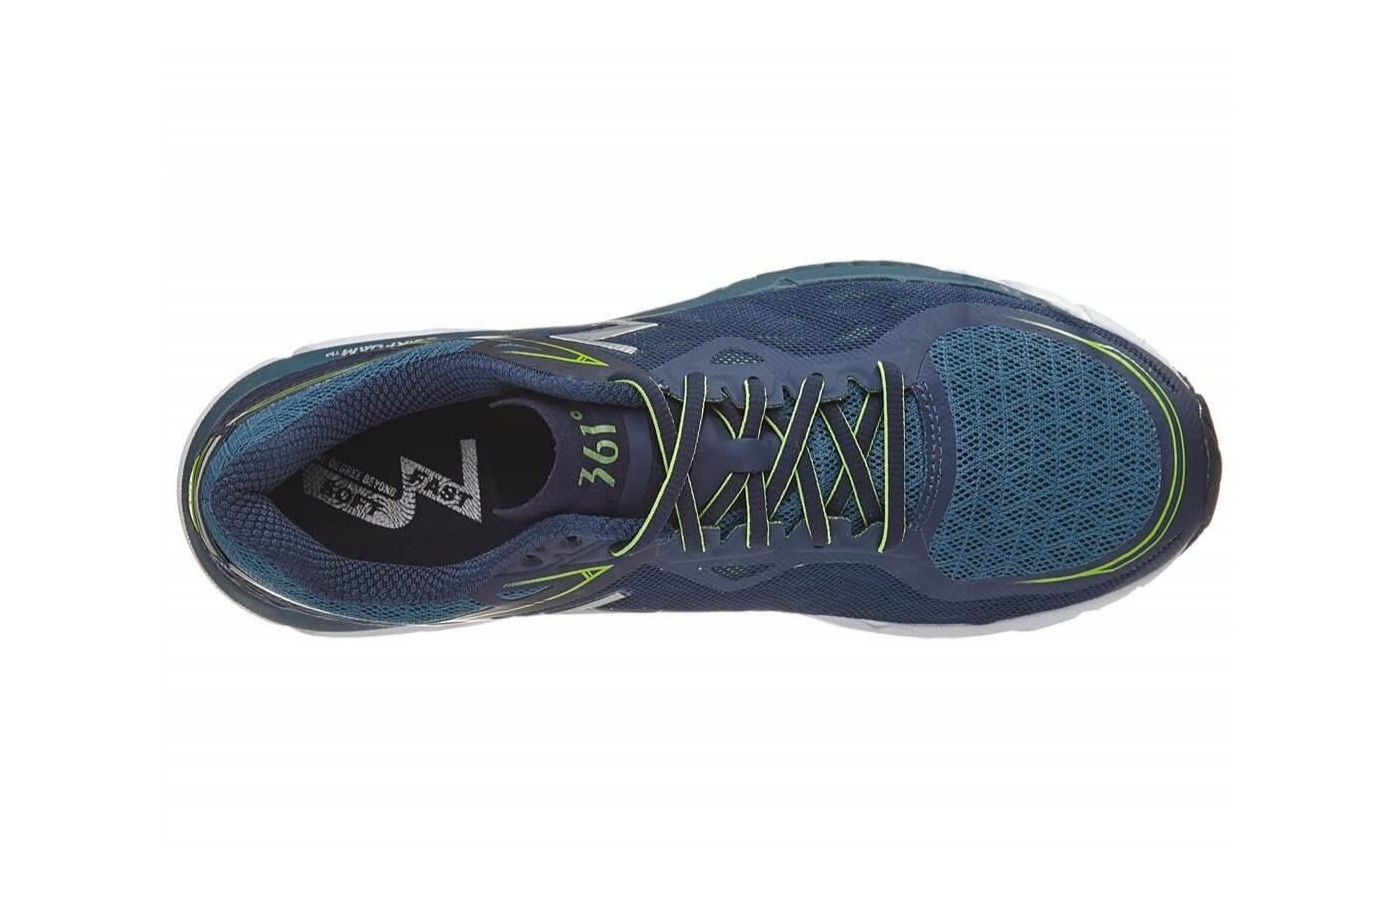 The 361 Spire 2 features a QU!KFOAM insole